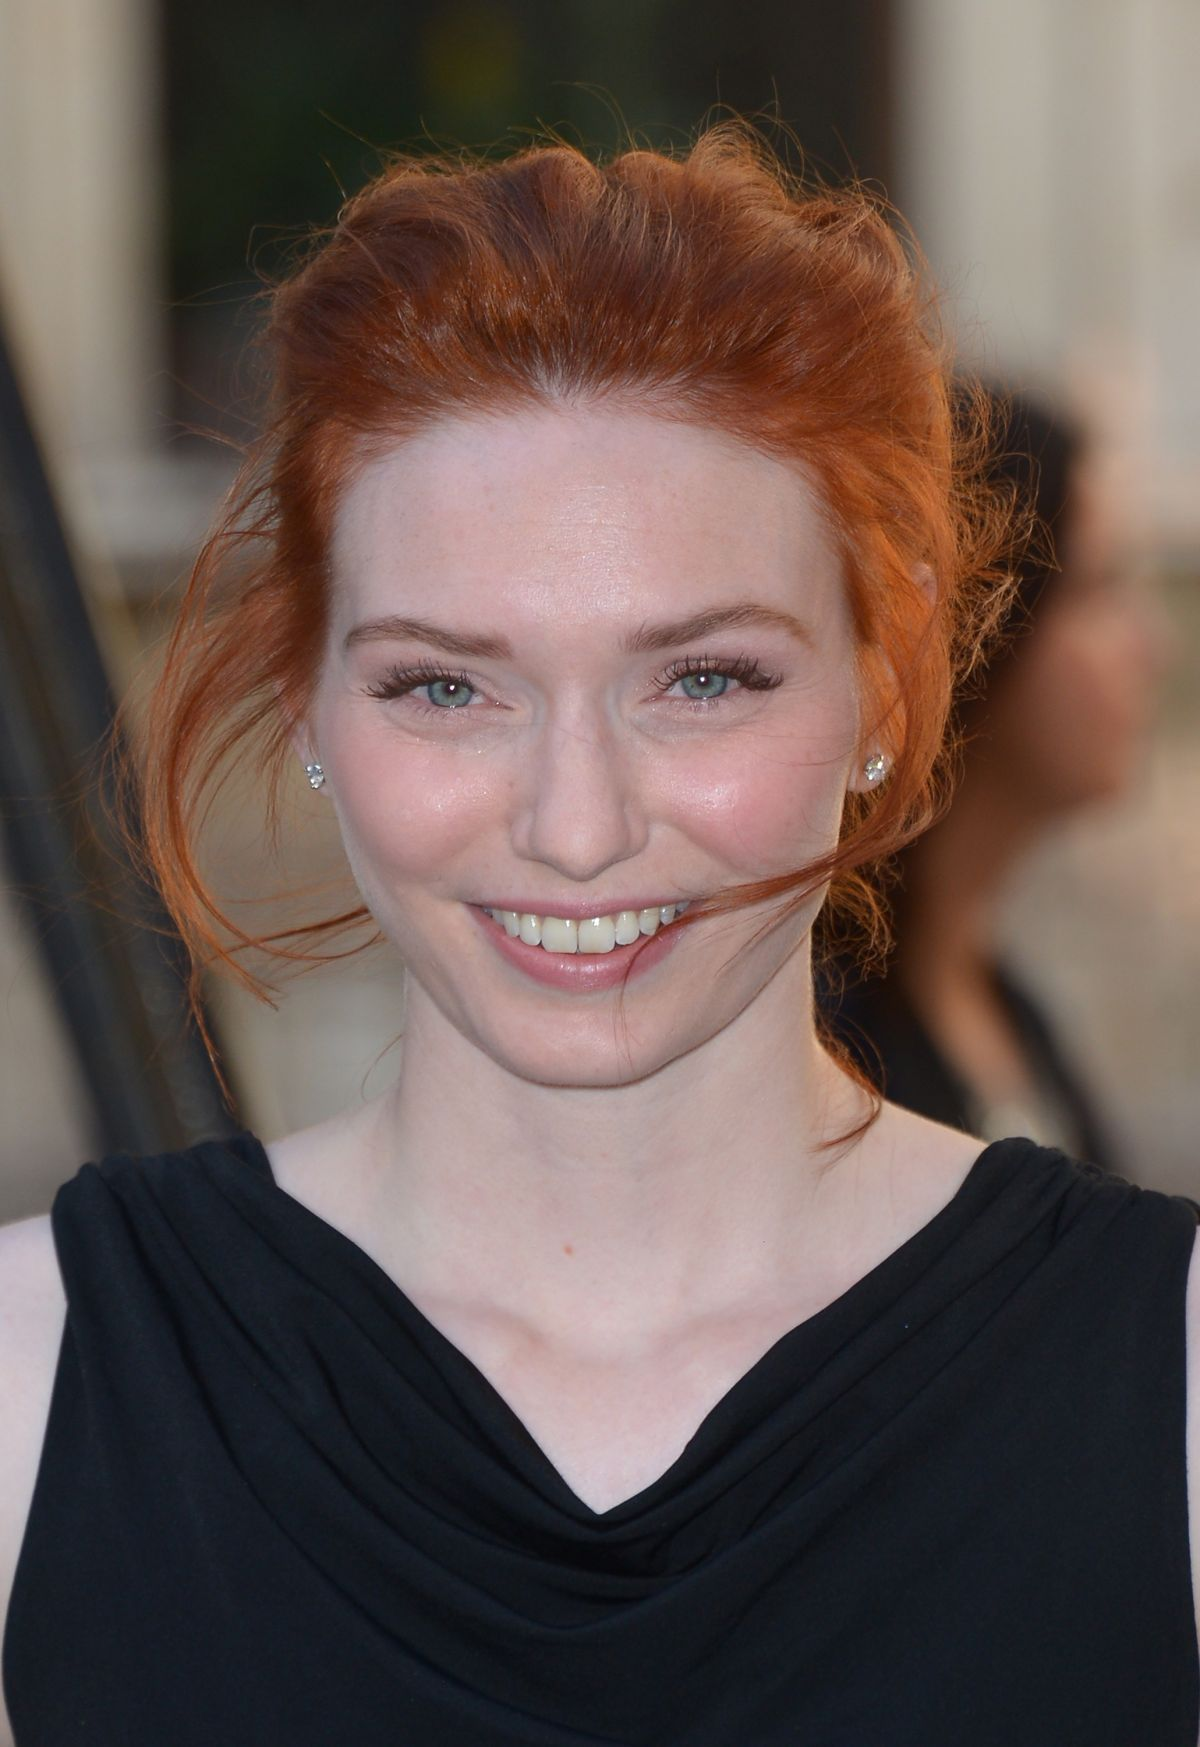 eleanor tomlinson imdbeleanor tomlinson gif, eleanor tomlinson gif hunt, eleanor tomlinson poldark, eleanor tomlinson site, eleanor tomlinson height, eleanor tomlinson - medhel an gwyns, eleanor tomlinson photoshoot, eleanor tomlinson songs, eleanor tomlinson and louis tomlinson, eleanor tomlinson and aidan turner relationship, eleanor tomlinson scene, eleanor tomlinson listal, eleanor tomlinson imdb, eleanor tomlinson tattoo, eleanor tomlinson height weight, eleanor tomlinson wikipedia, eleanor tomlinson screencaps, eleanor tomlinson education, eleanor tomlinson pregnant, eleanor tomlinson gif hunt tumblr